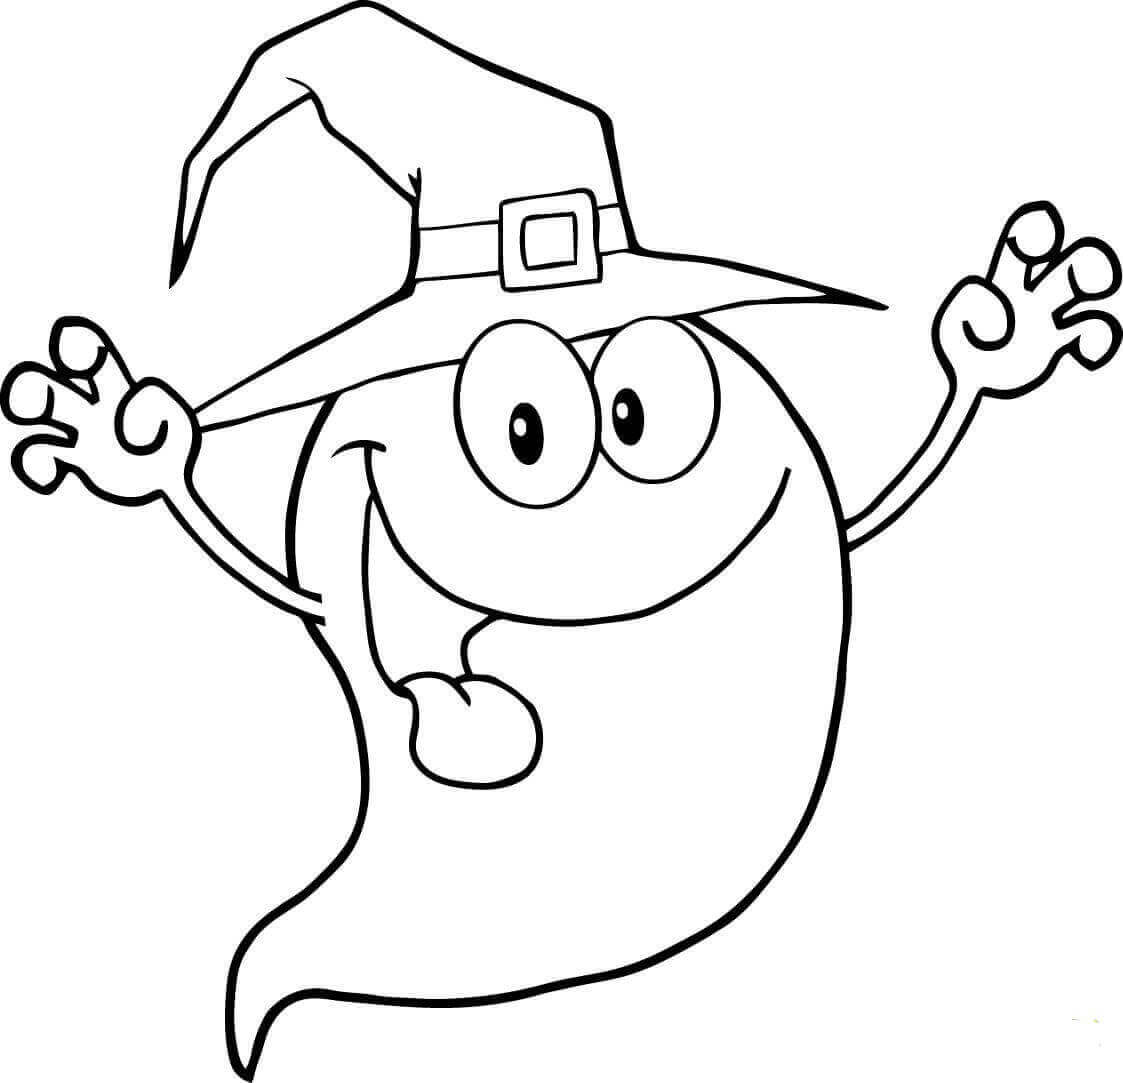 ghost for coloring 30 free ghost coloring pages printable coloring ghost for